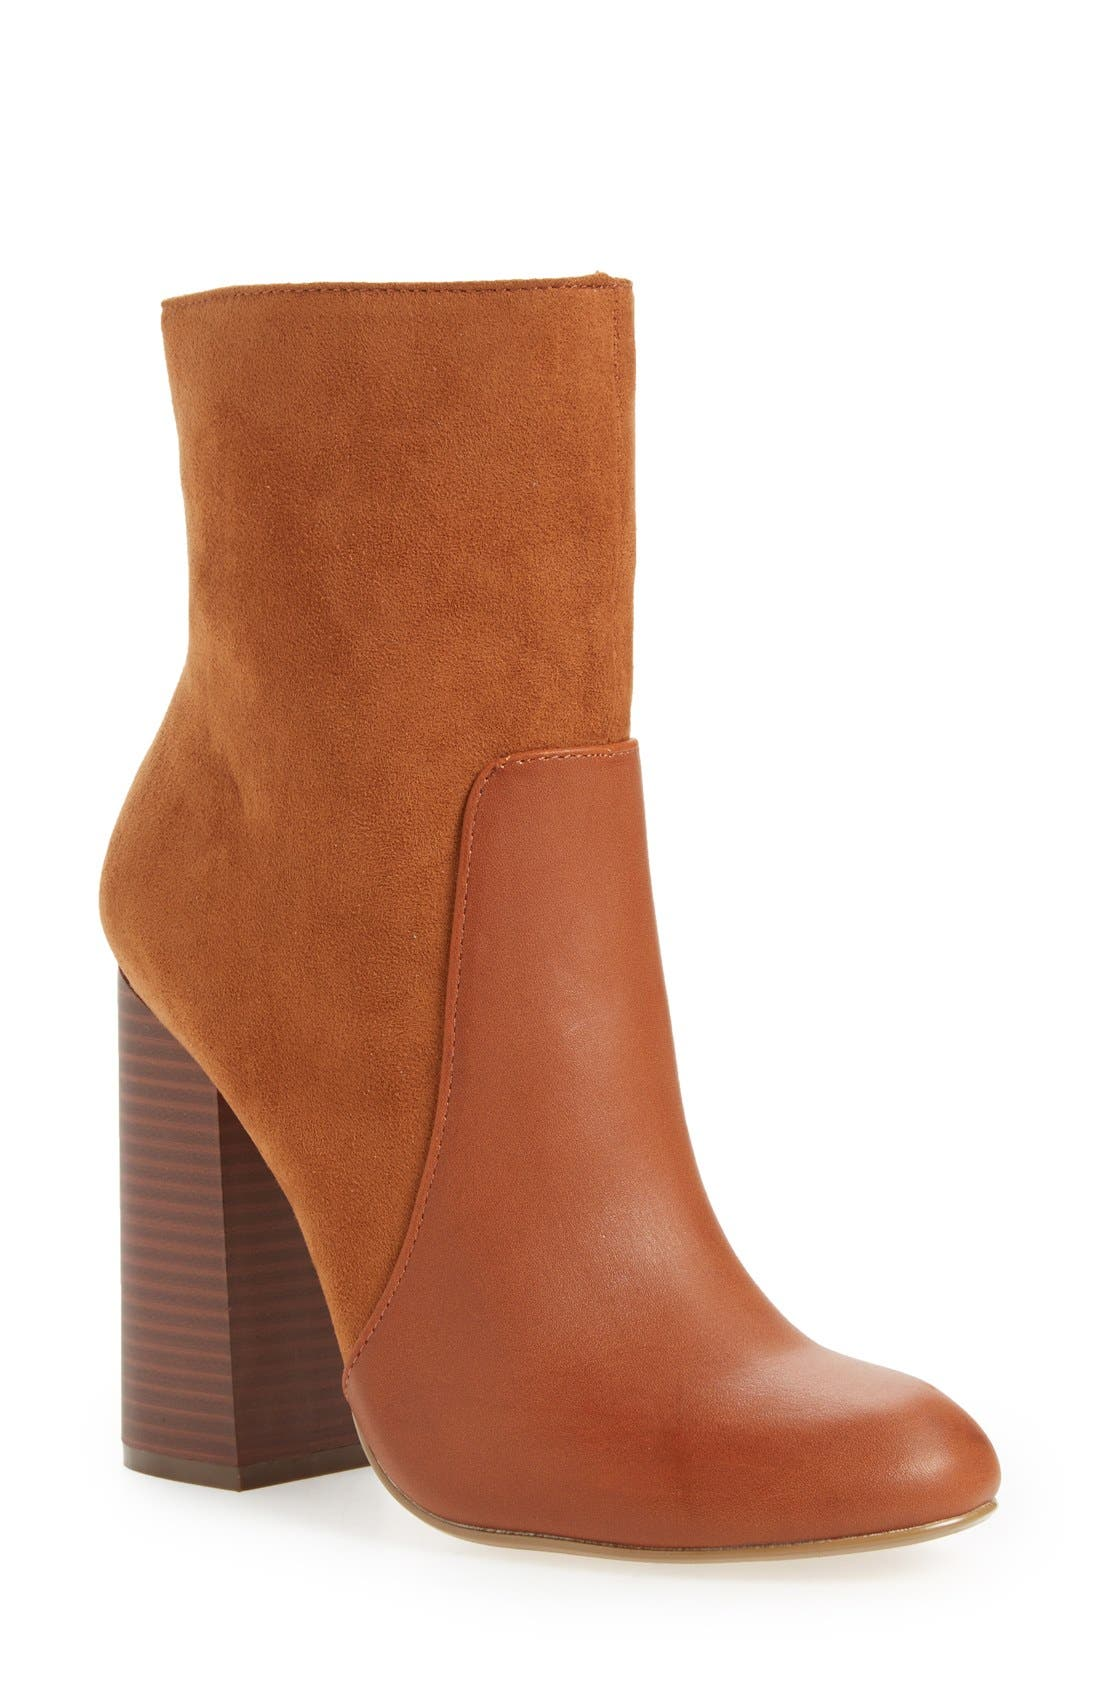 Alternate Image 1 Selected - Athena Alexander 'Farren' Mid Calf Boot (Women)